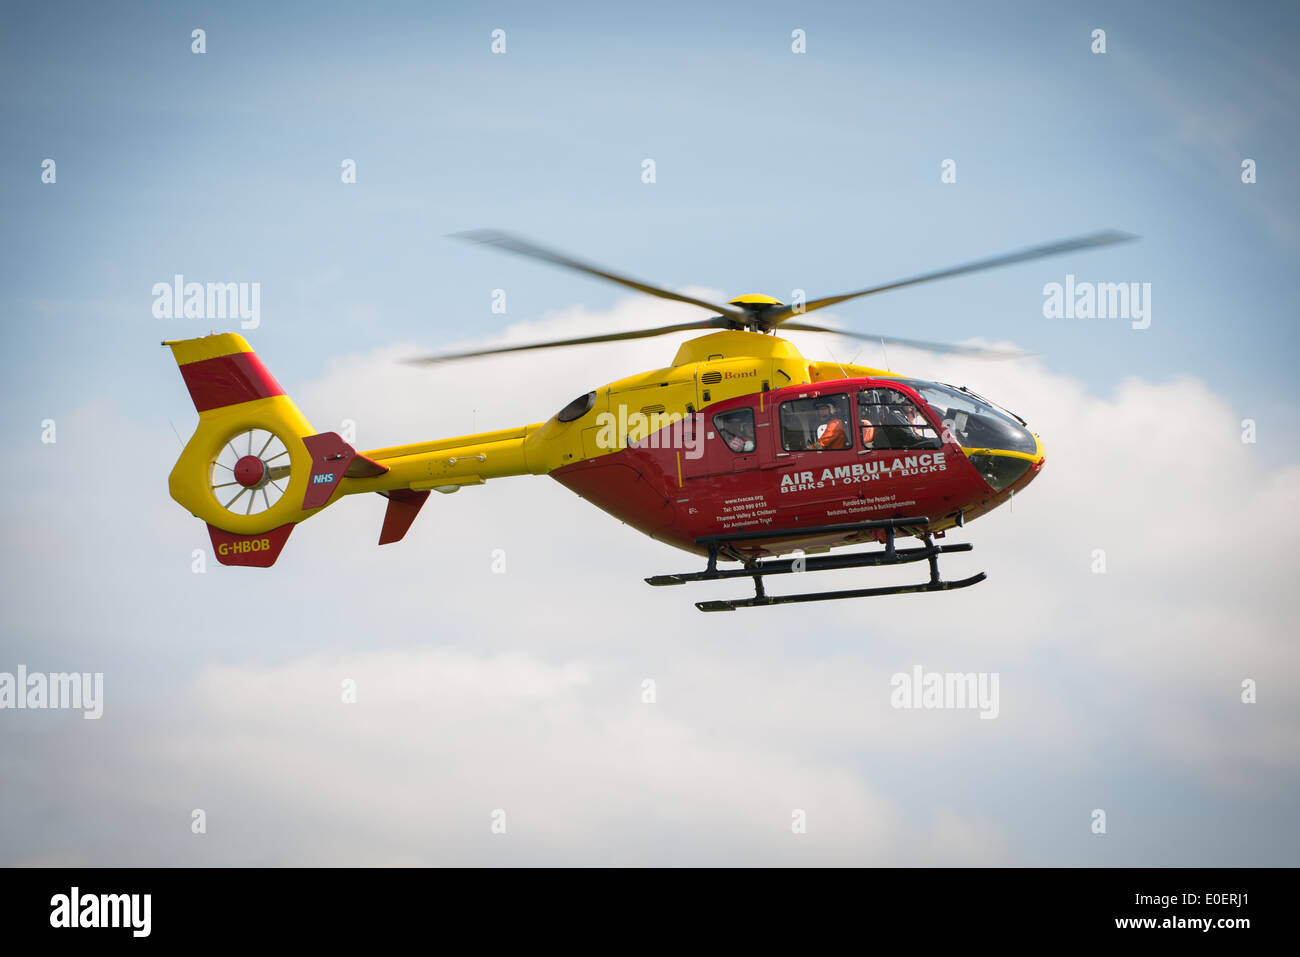 Thames Valley and Chilterns Air Ambulance Trust. Eurocopter EC135. Seen at Abingdon Air Show UK, May 2014. - Stock Image